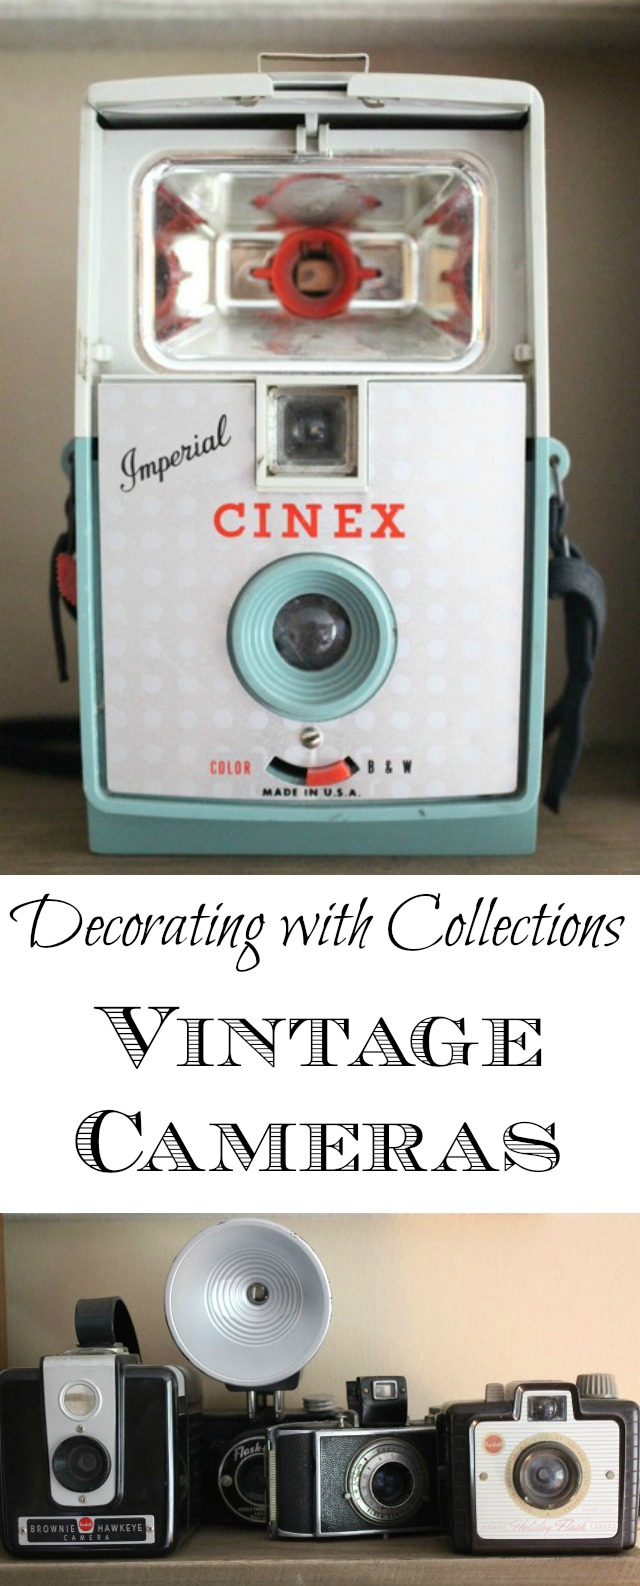 Decorating with Vintage Cameras kellyelko.com